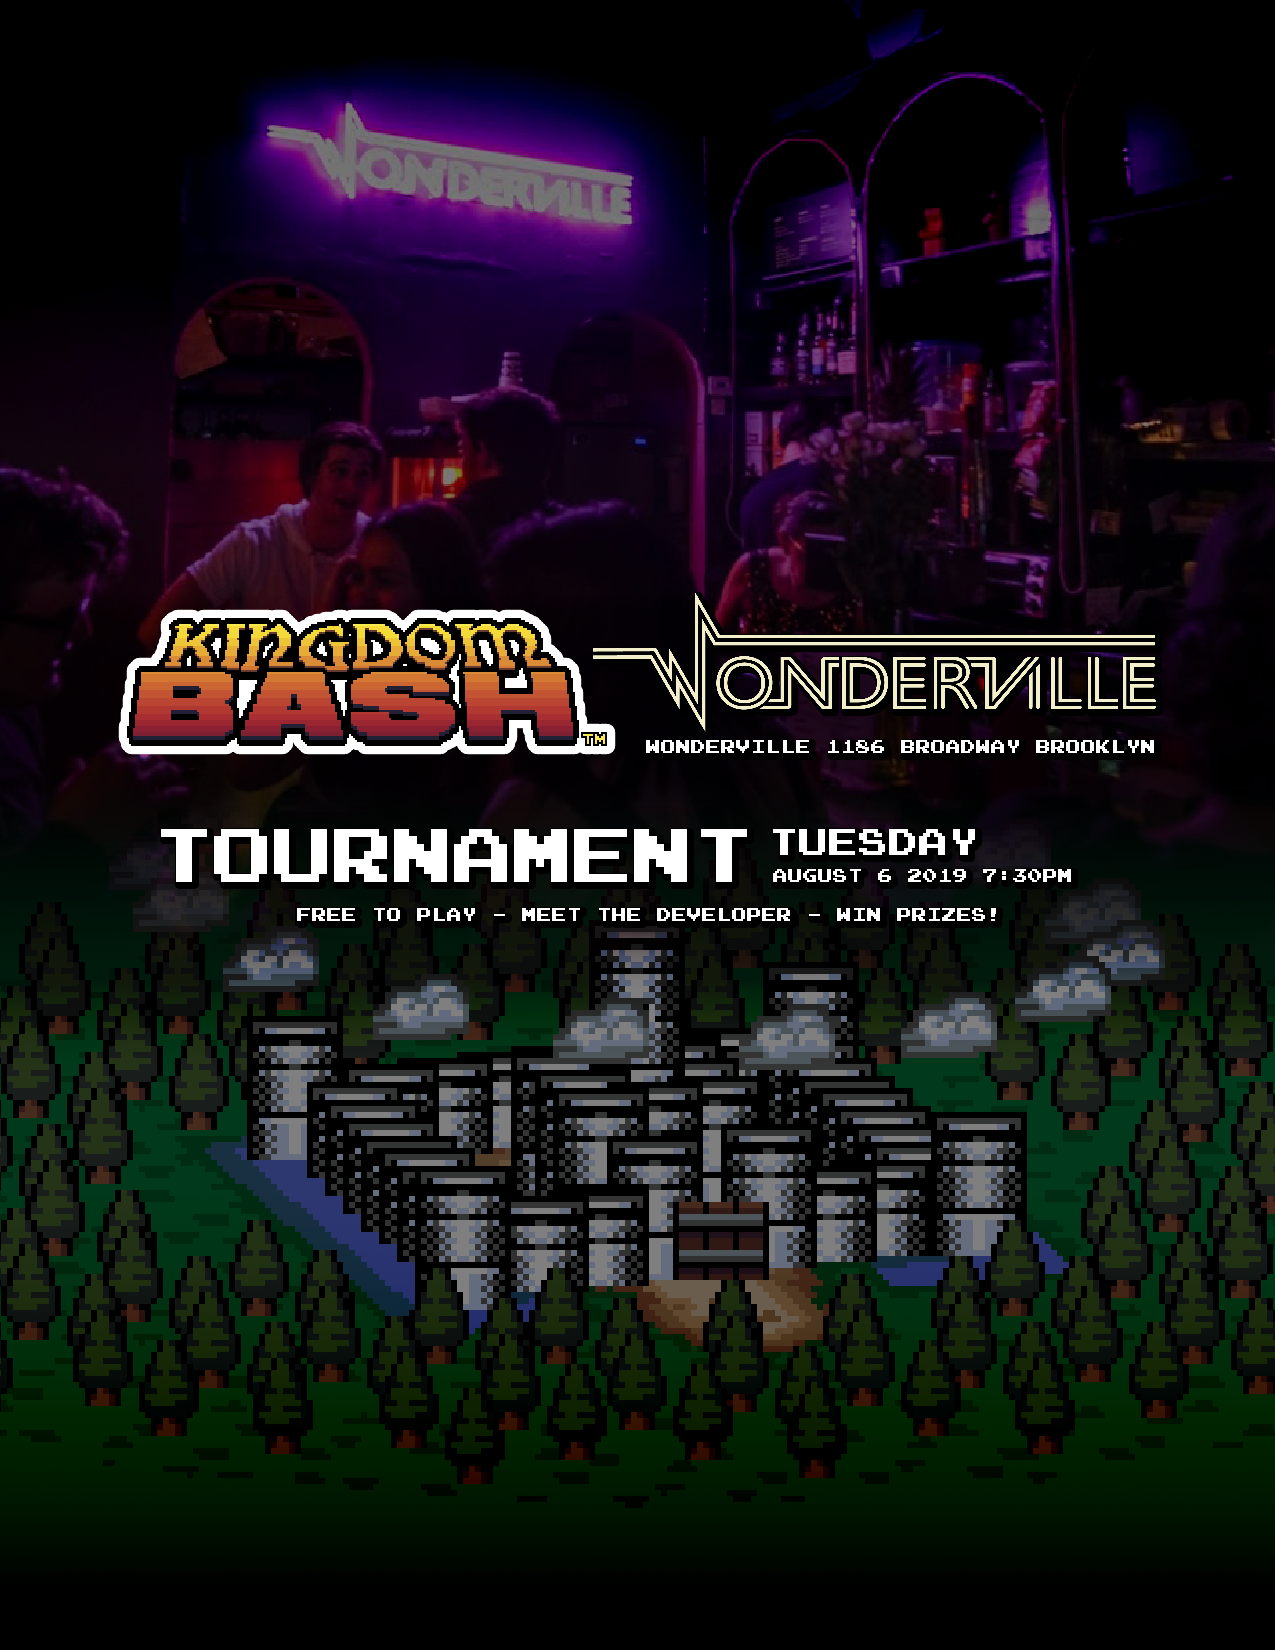 RSVP:  https://withfriends.co/Event/2150286/Kingdom_Bash_Tournament